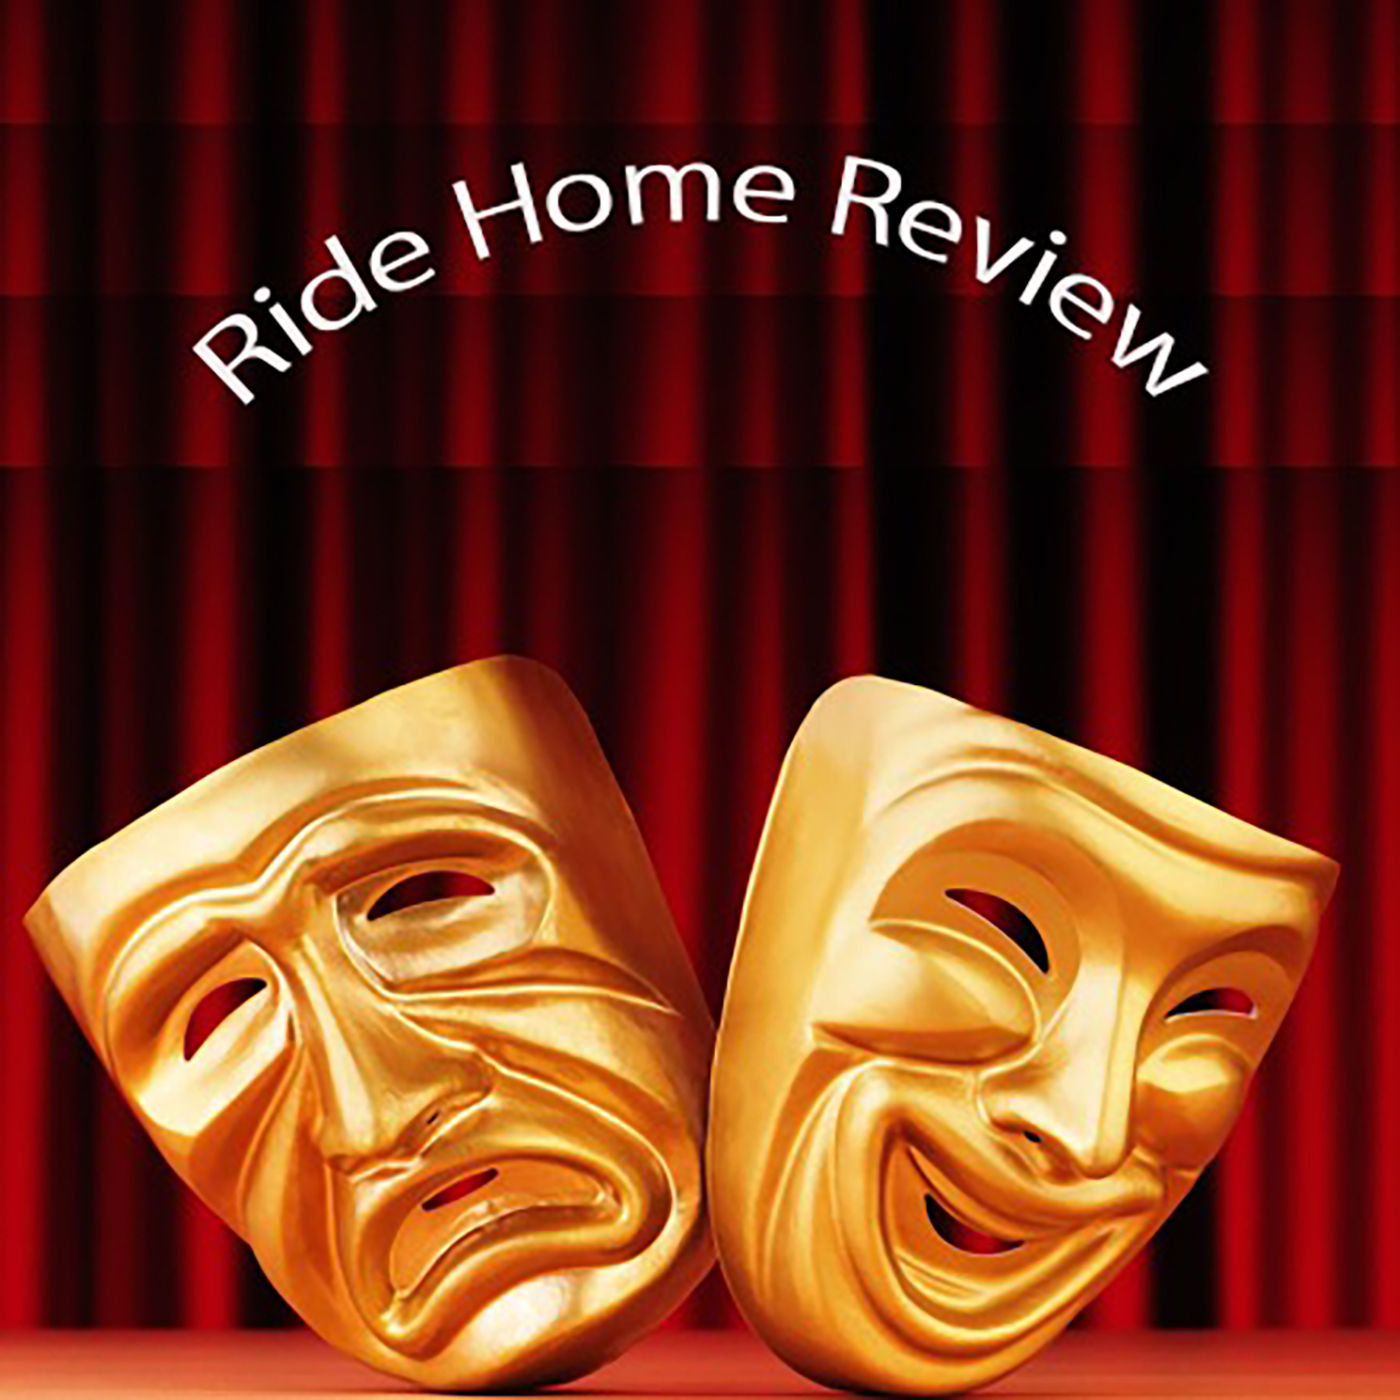 RideHomeReview